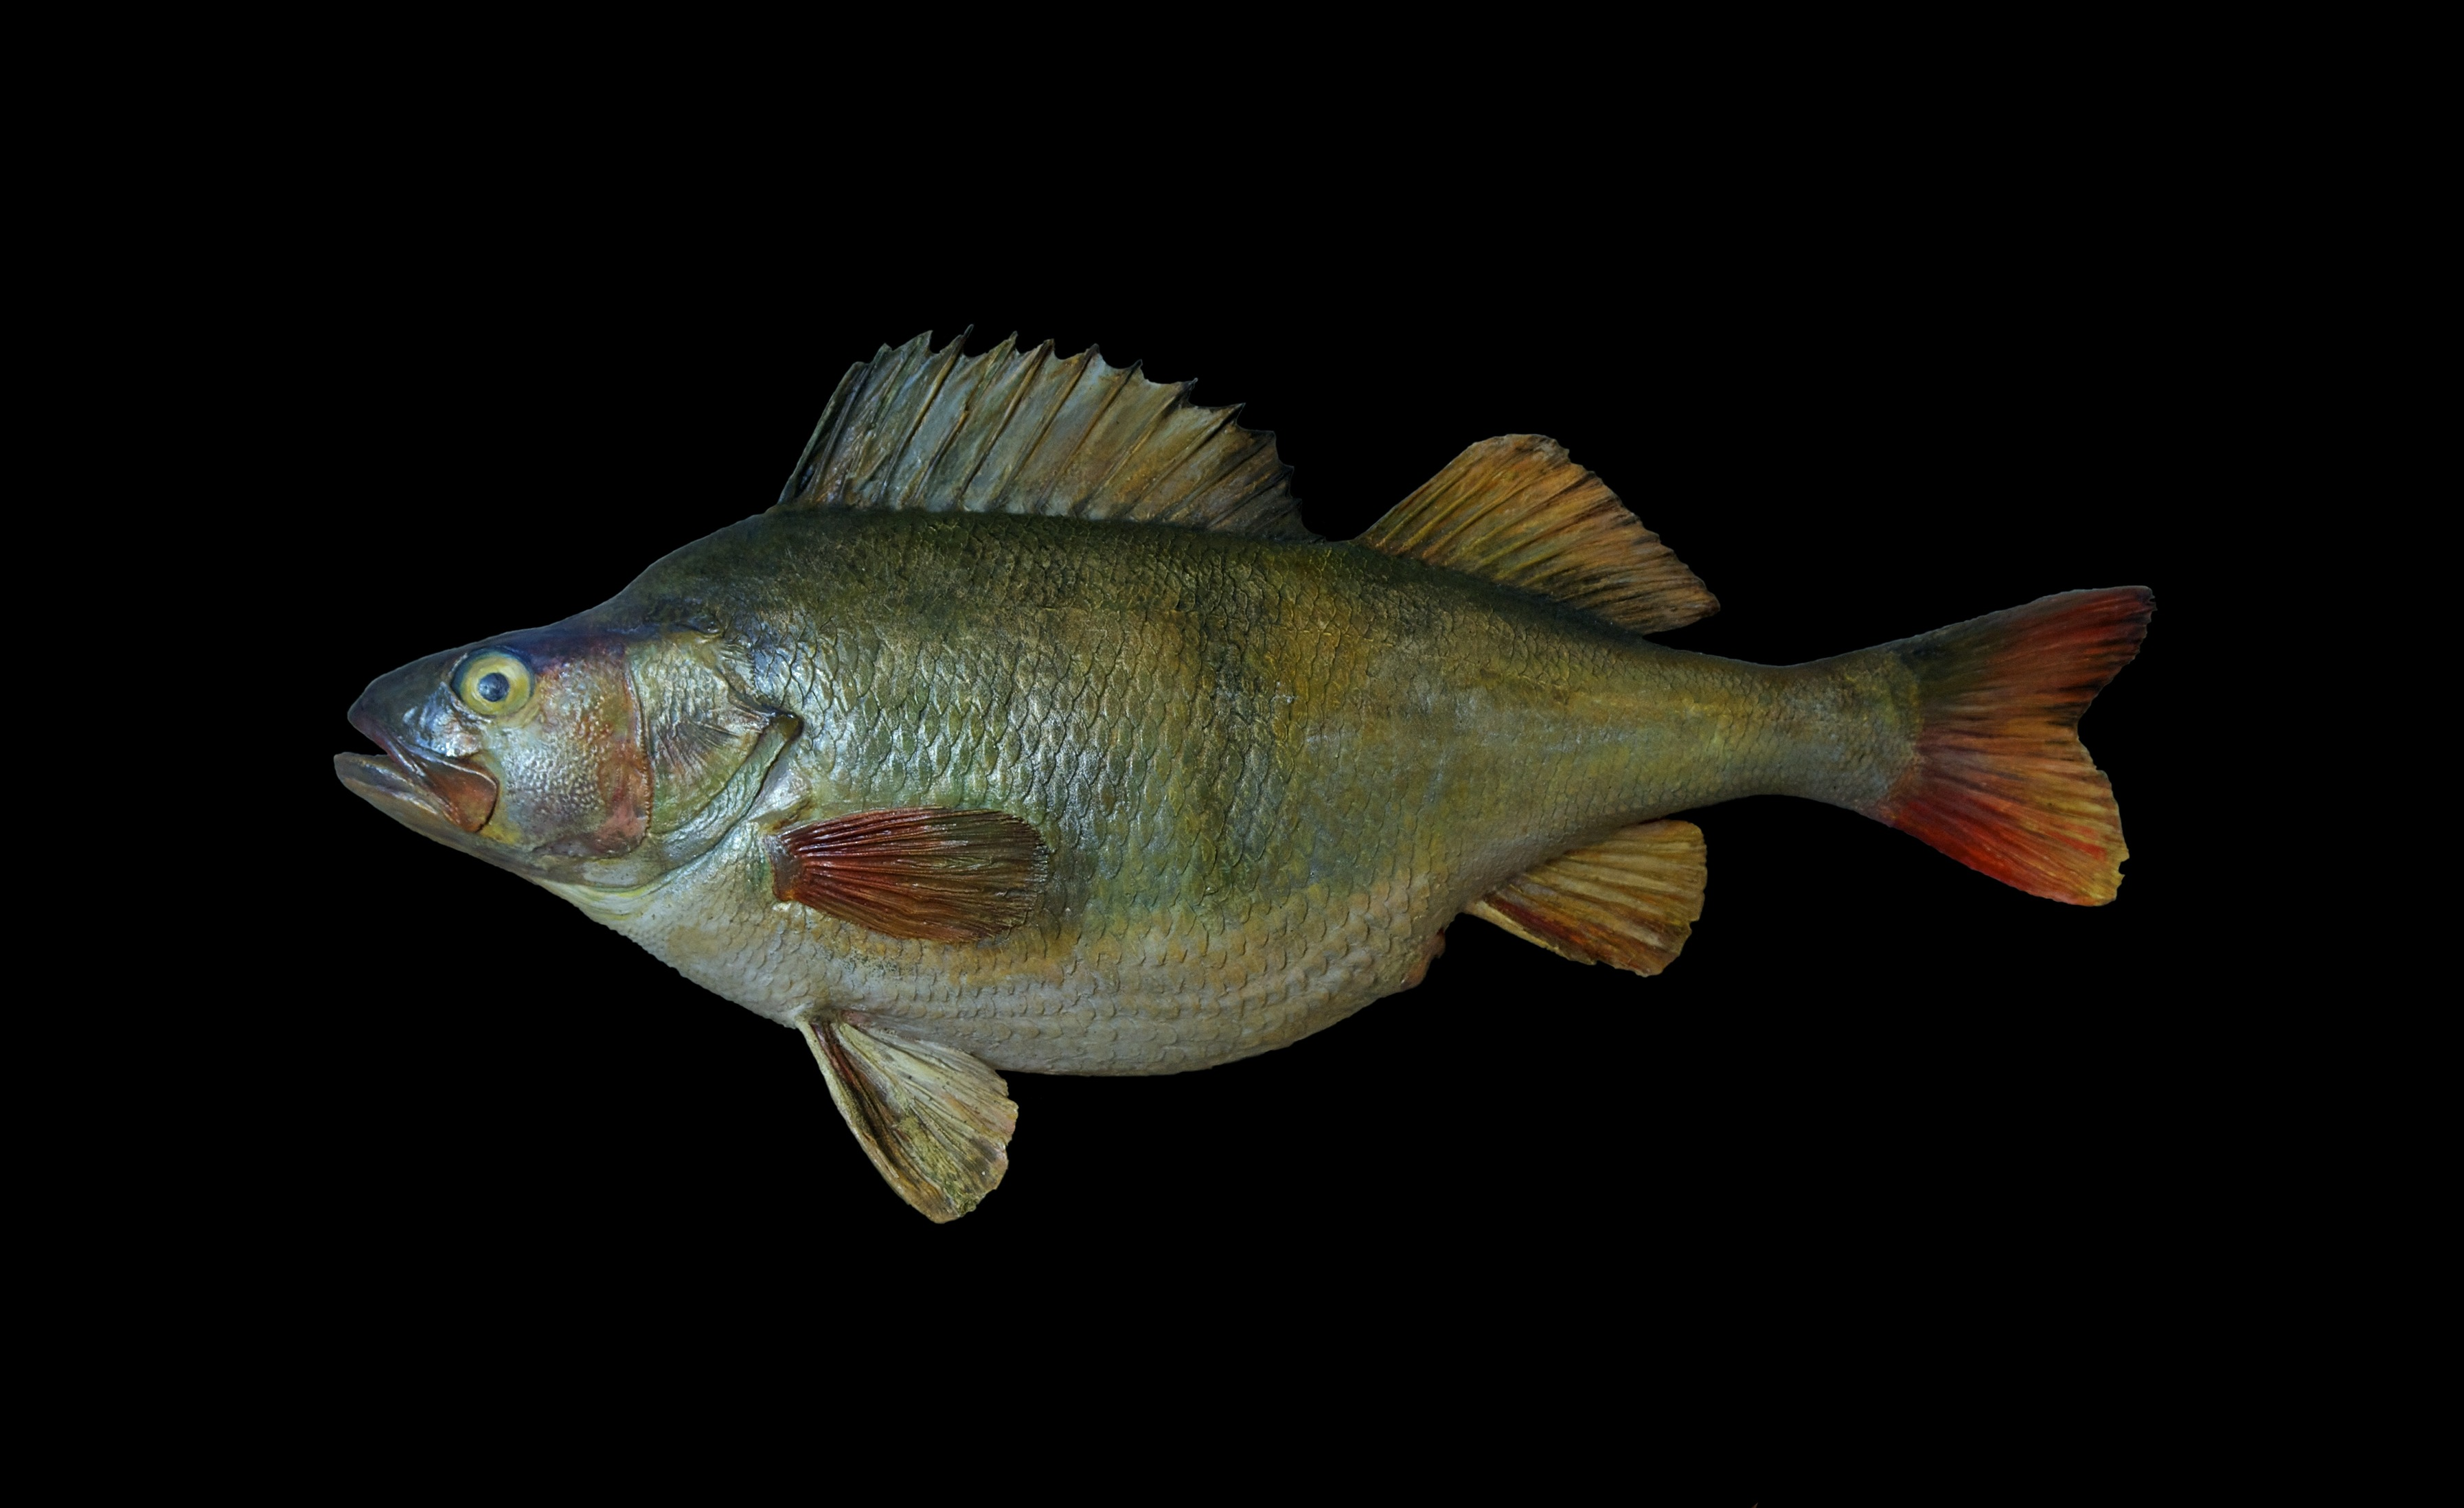 A yellow perch mount.